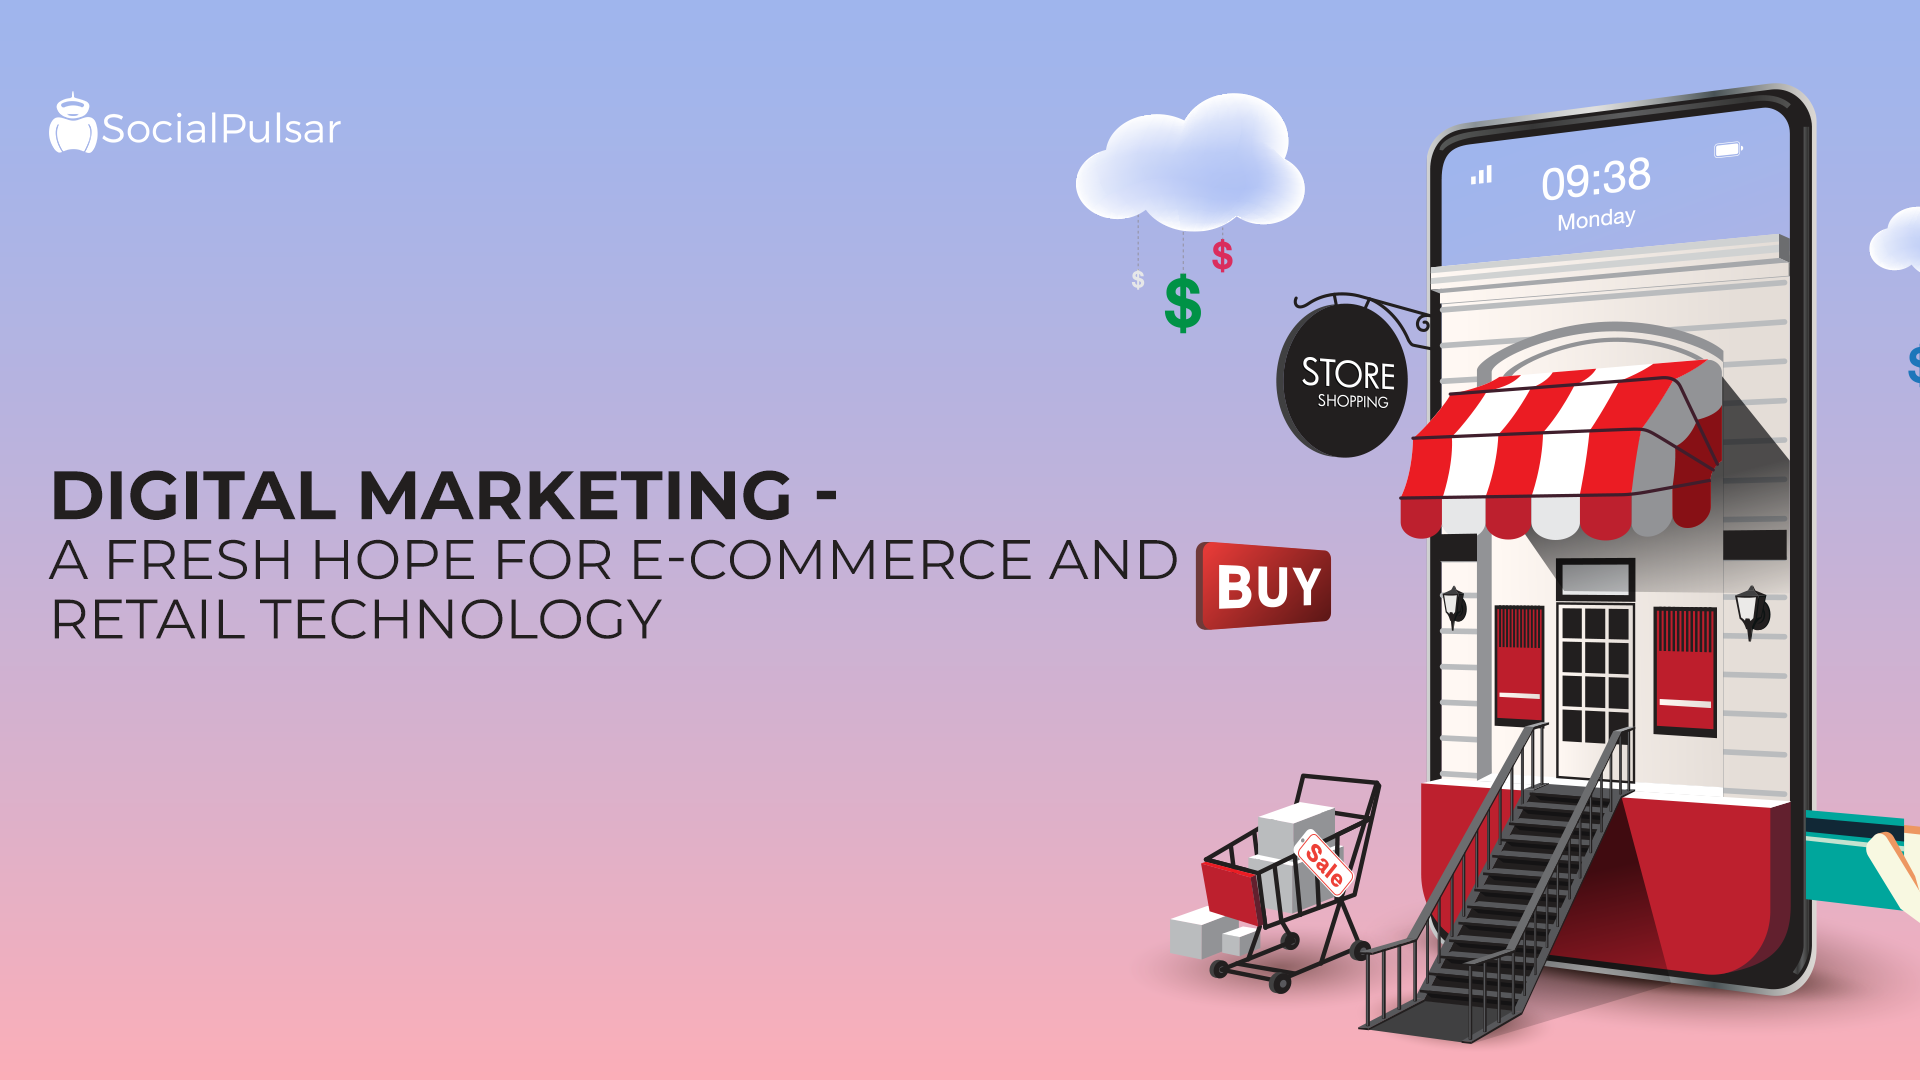 Digital Marketing – A Fresh Hope For E-commerce And Retail Technology